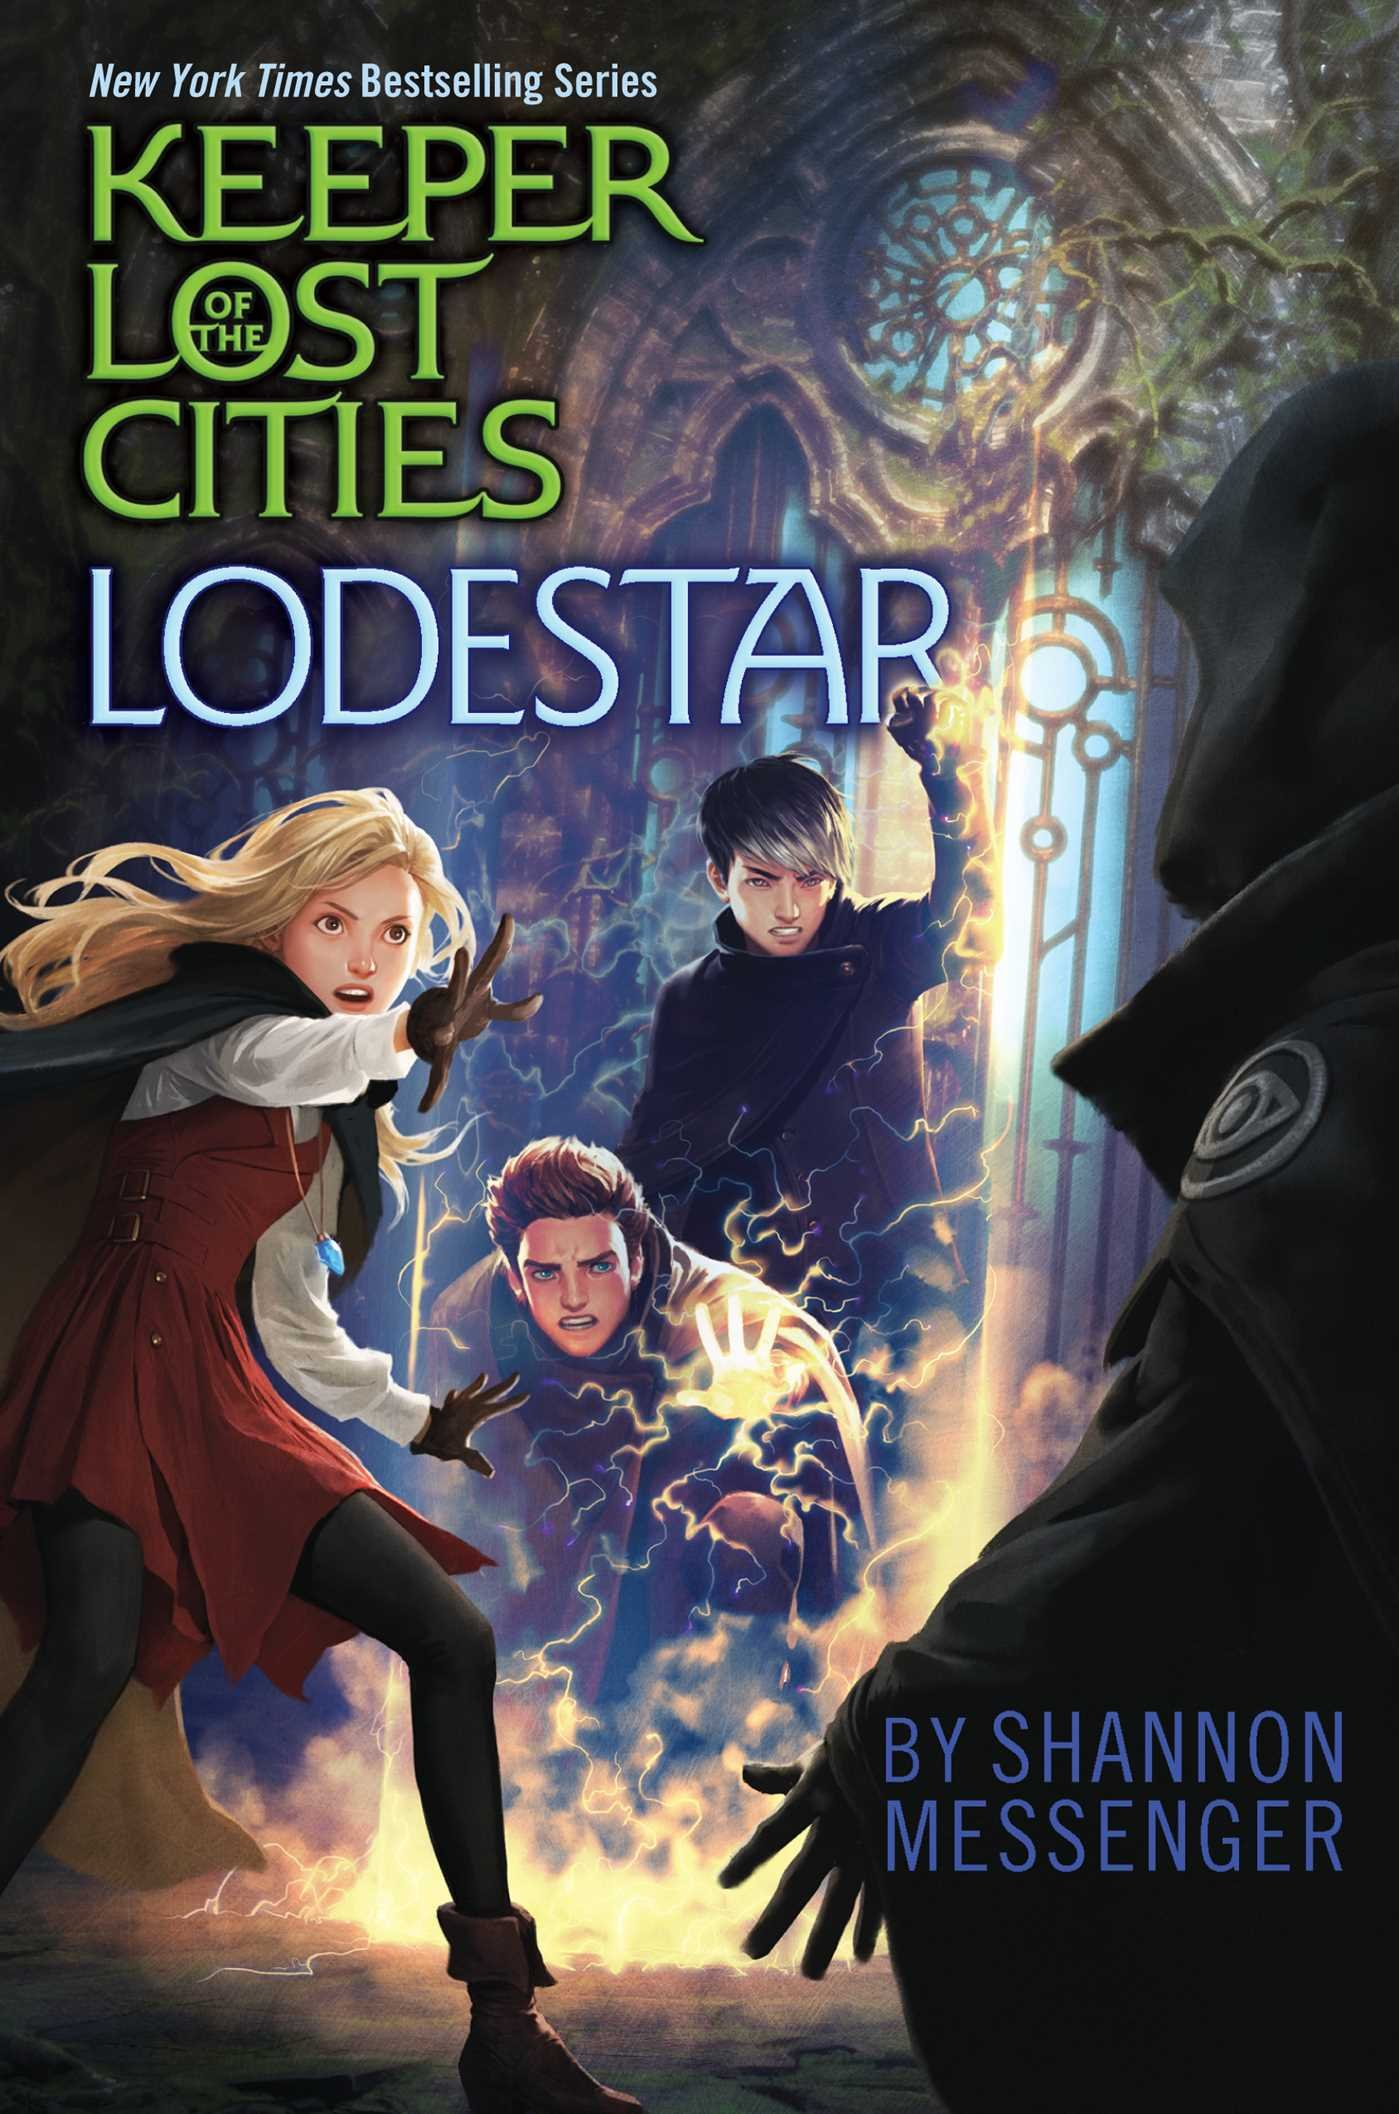 Lodestar keeper of the lost cities shannon messenger lodestar keeper of the lost cities shannon messenger 9781481474955 amazon books fandeluxe Choice Image